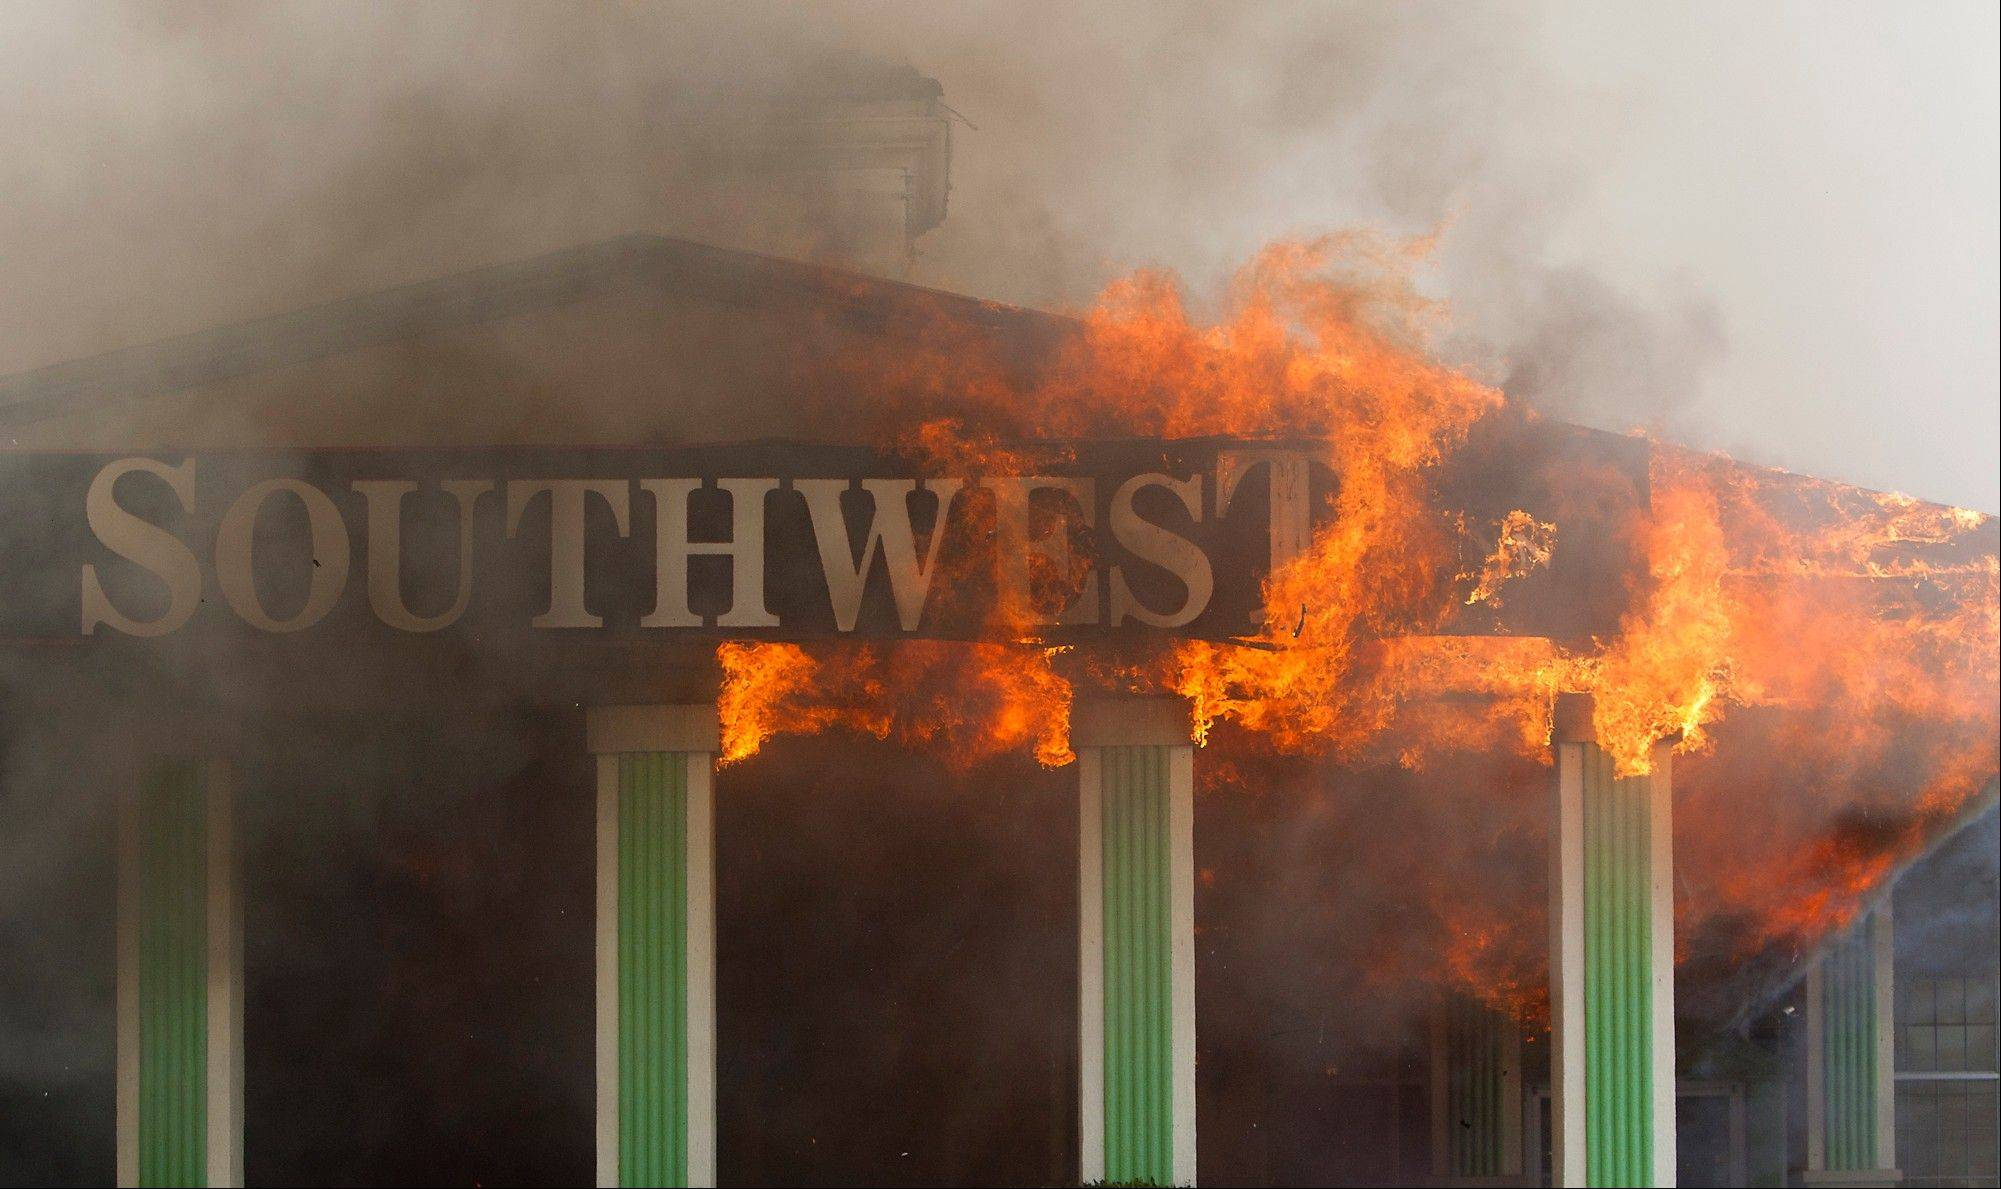 Flames erupt Friday from the Southwest Inn on U.S. 59 in Houston.